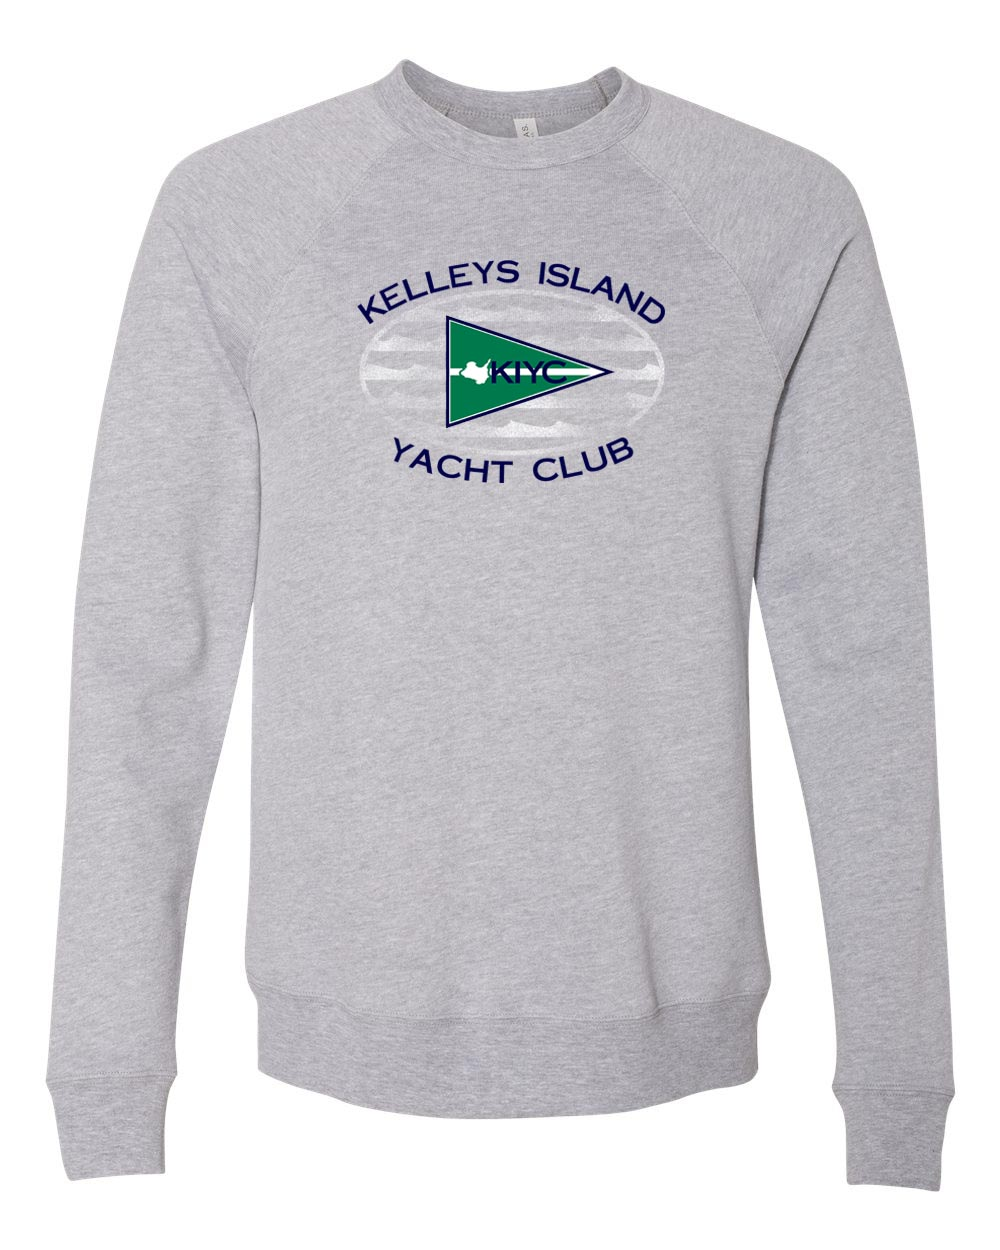 Modern Flagship Logo Crew Sweatshirt in Athletic Heather (Unisex)